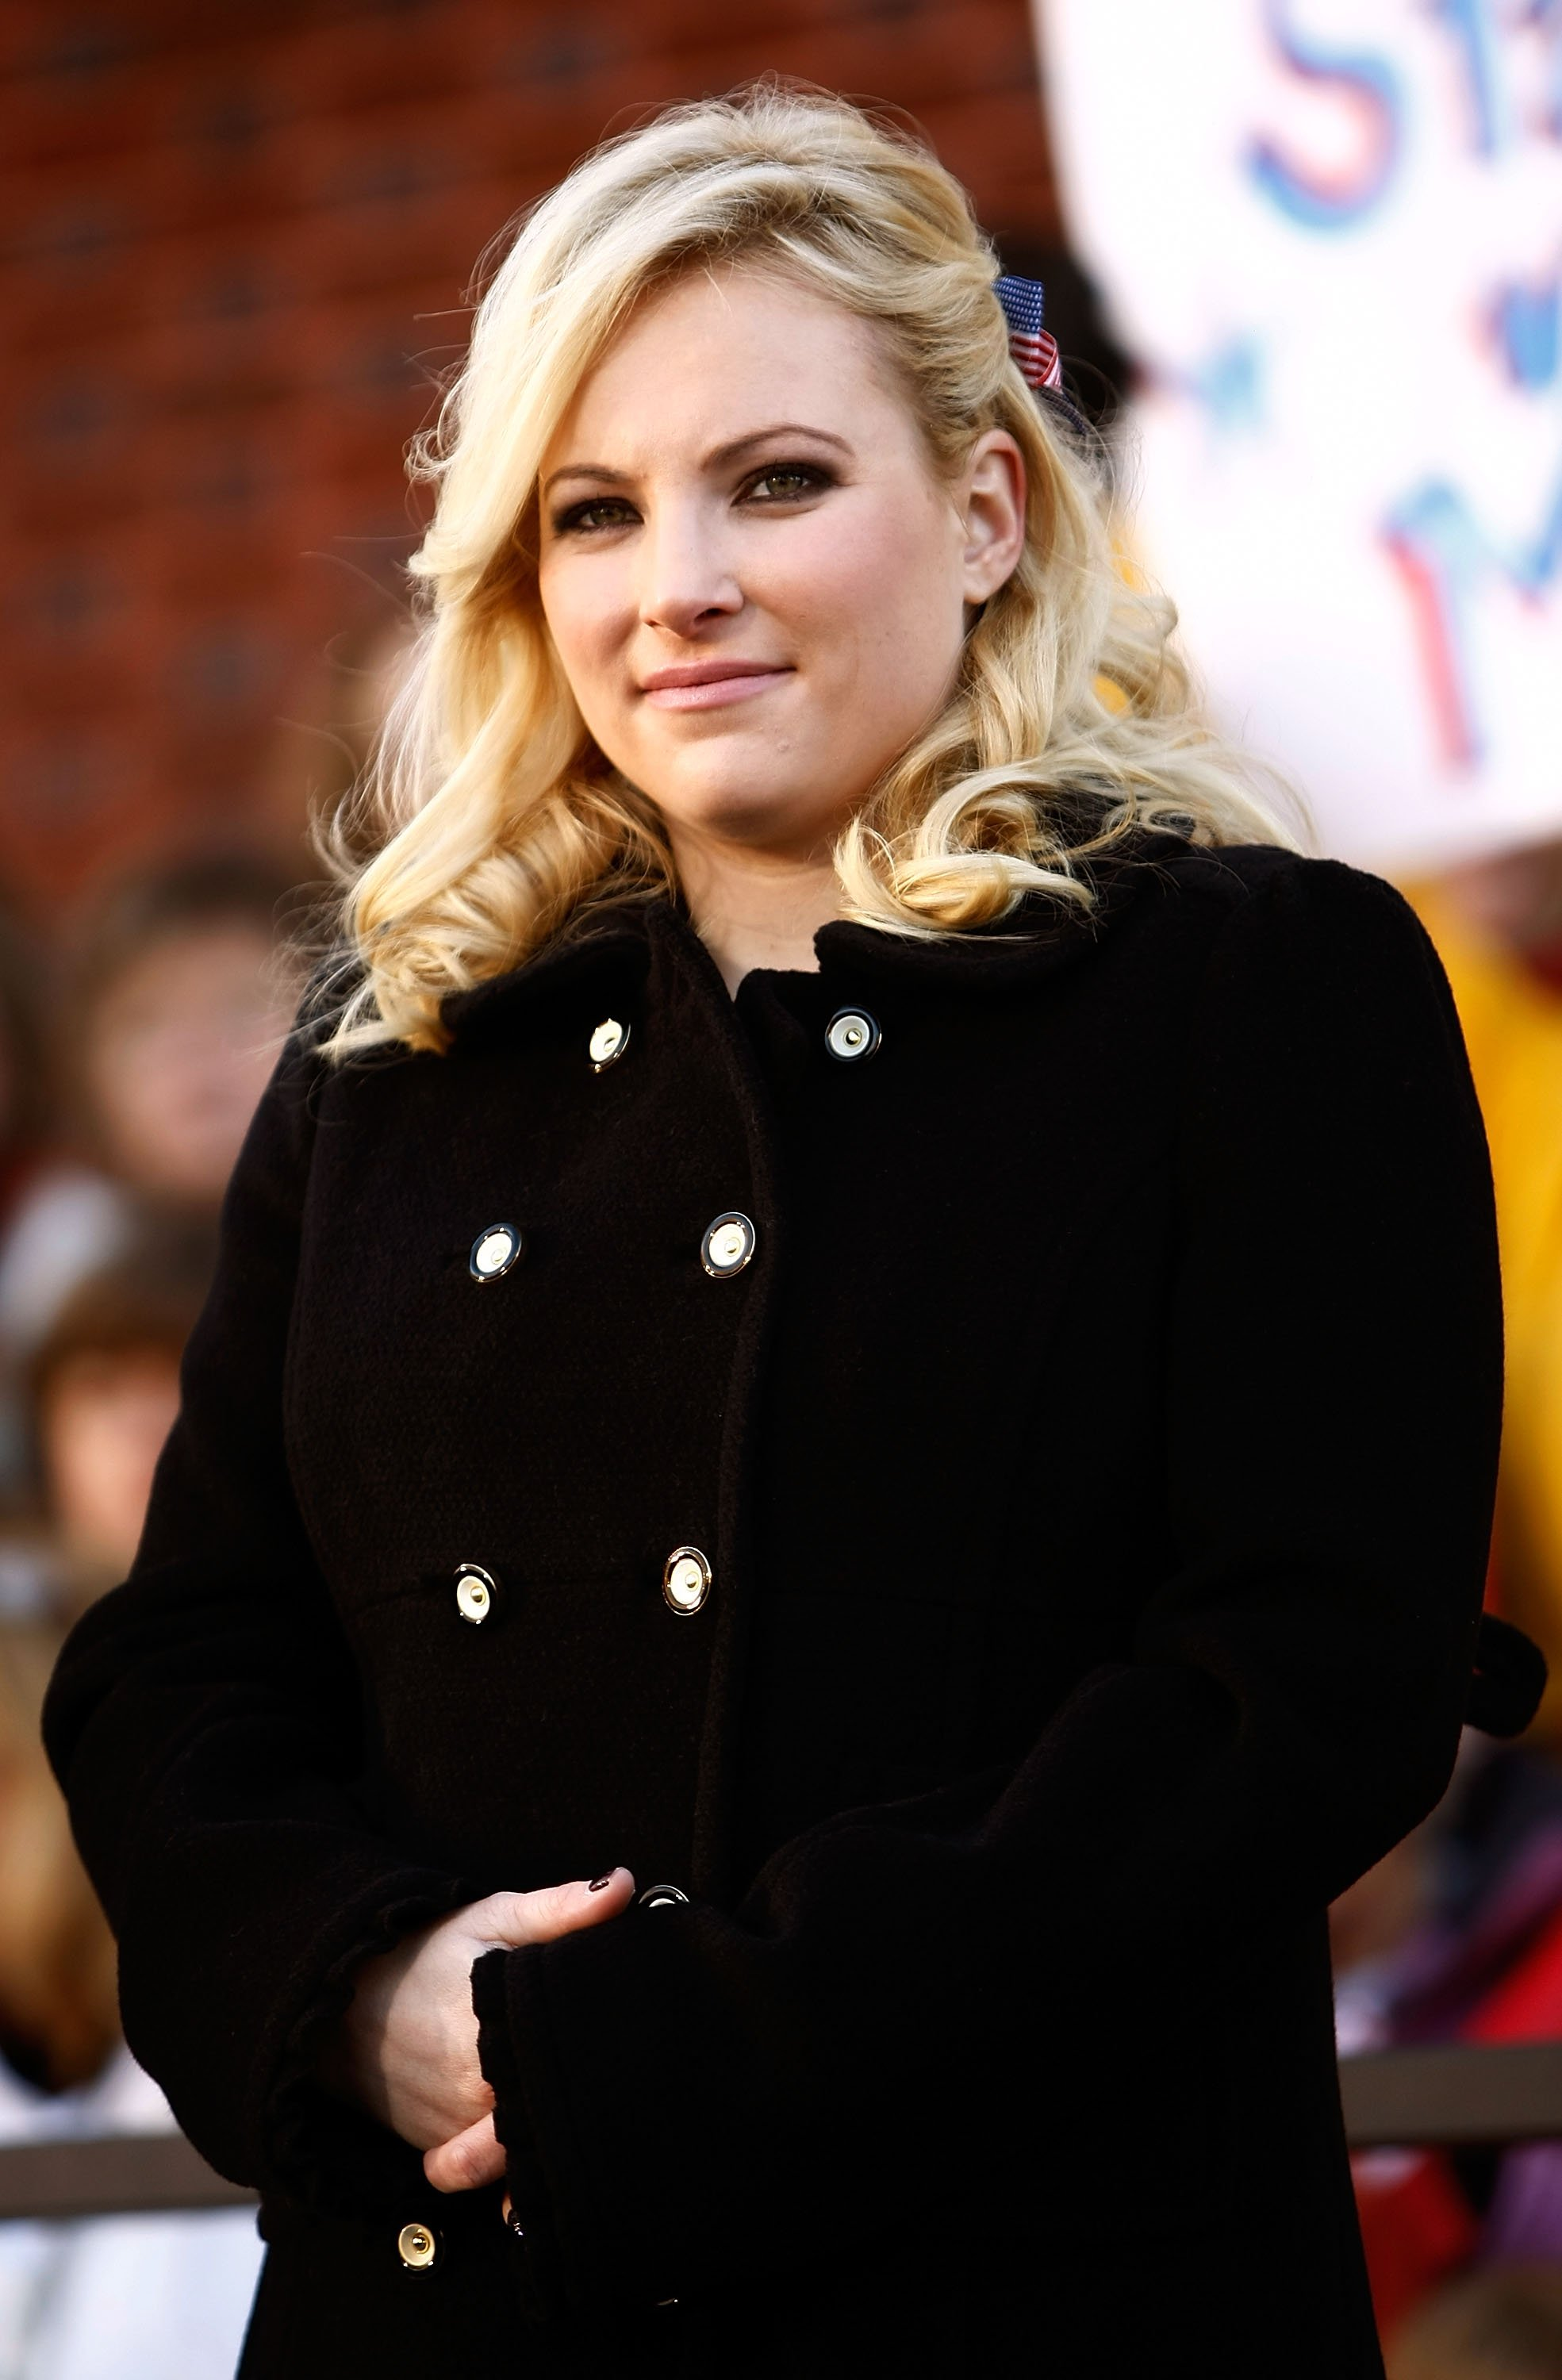 Meghan McCain attends a campaign rally at Defiance Junior High School in Ohio on October 30, 2008 | Photo: Getty Images